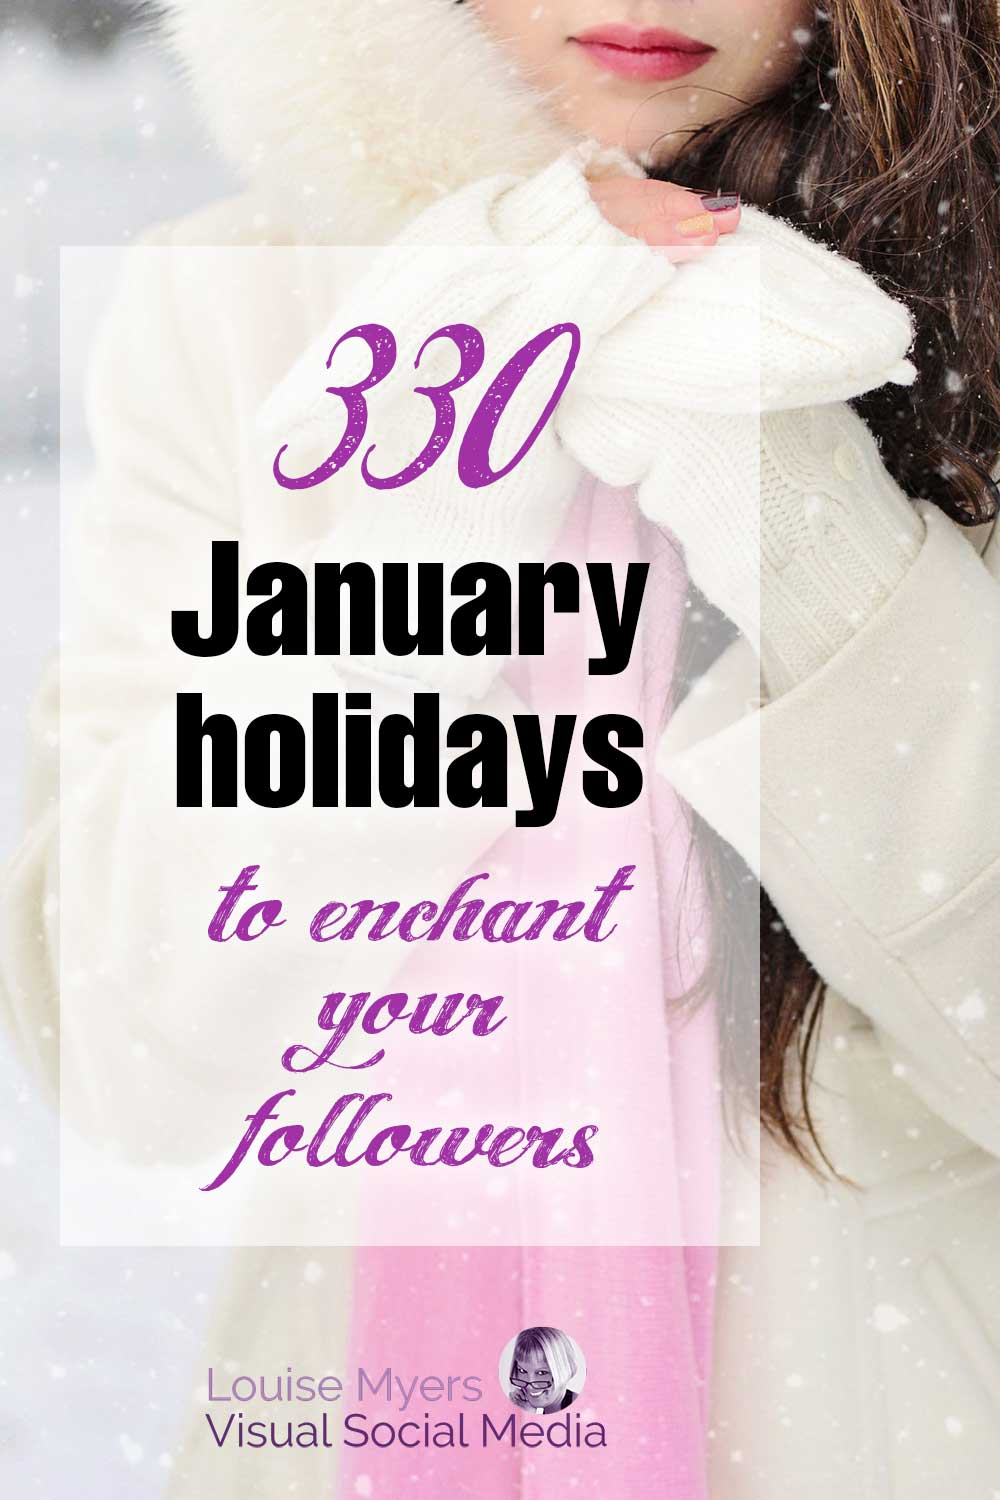 330 january holidays to enchant your followers script on photo closeup of woman in coat and scarf.